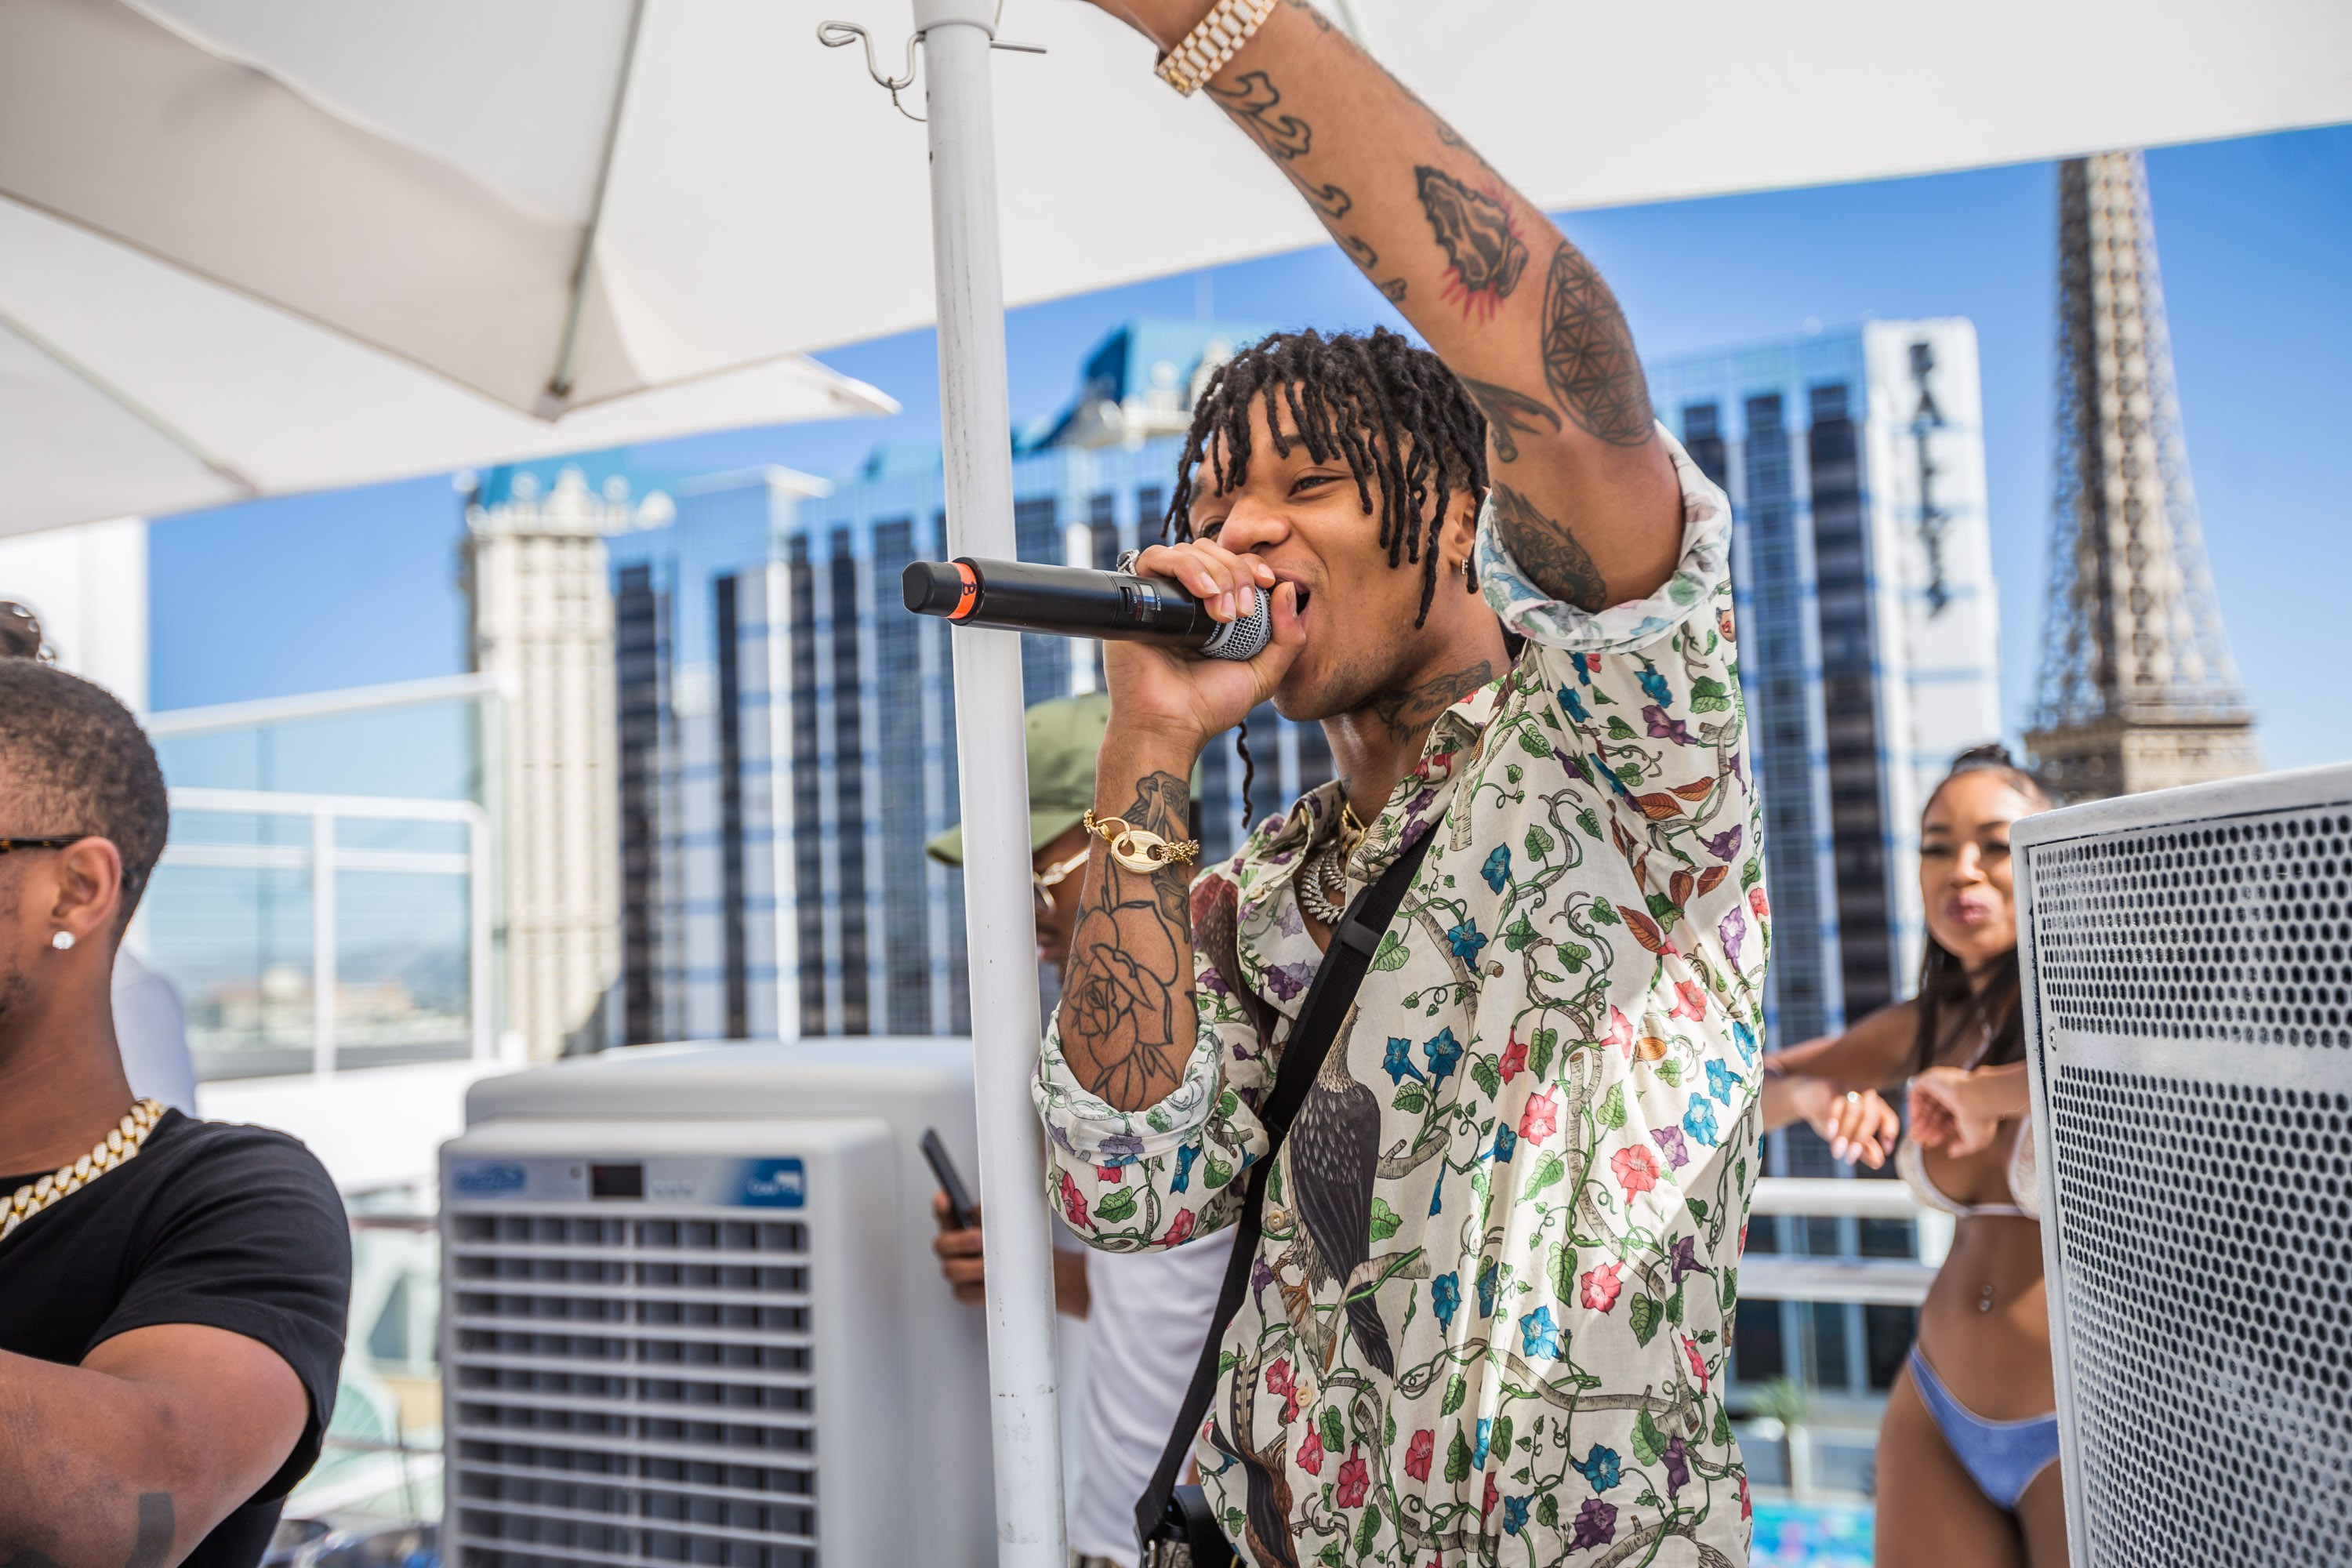 Swae Lee is About to Drop a Solo Project [Watch] Swae Lee Celebrates 24th Birthday at Drais Beachclub Las Vegas During SremmLife Sundays 6